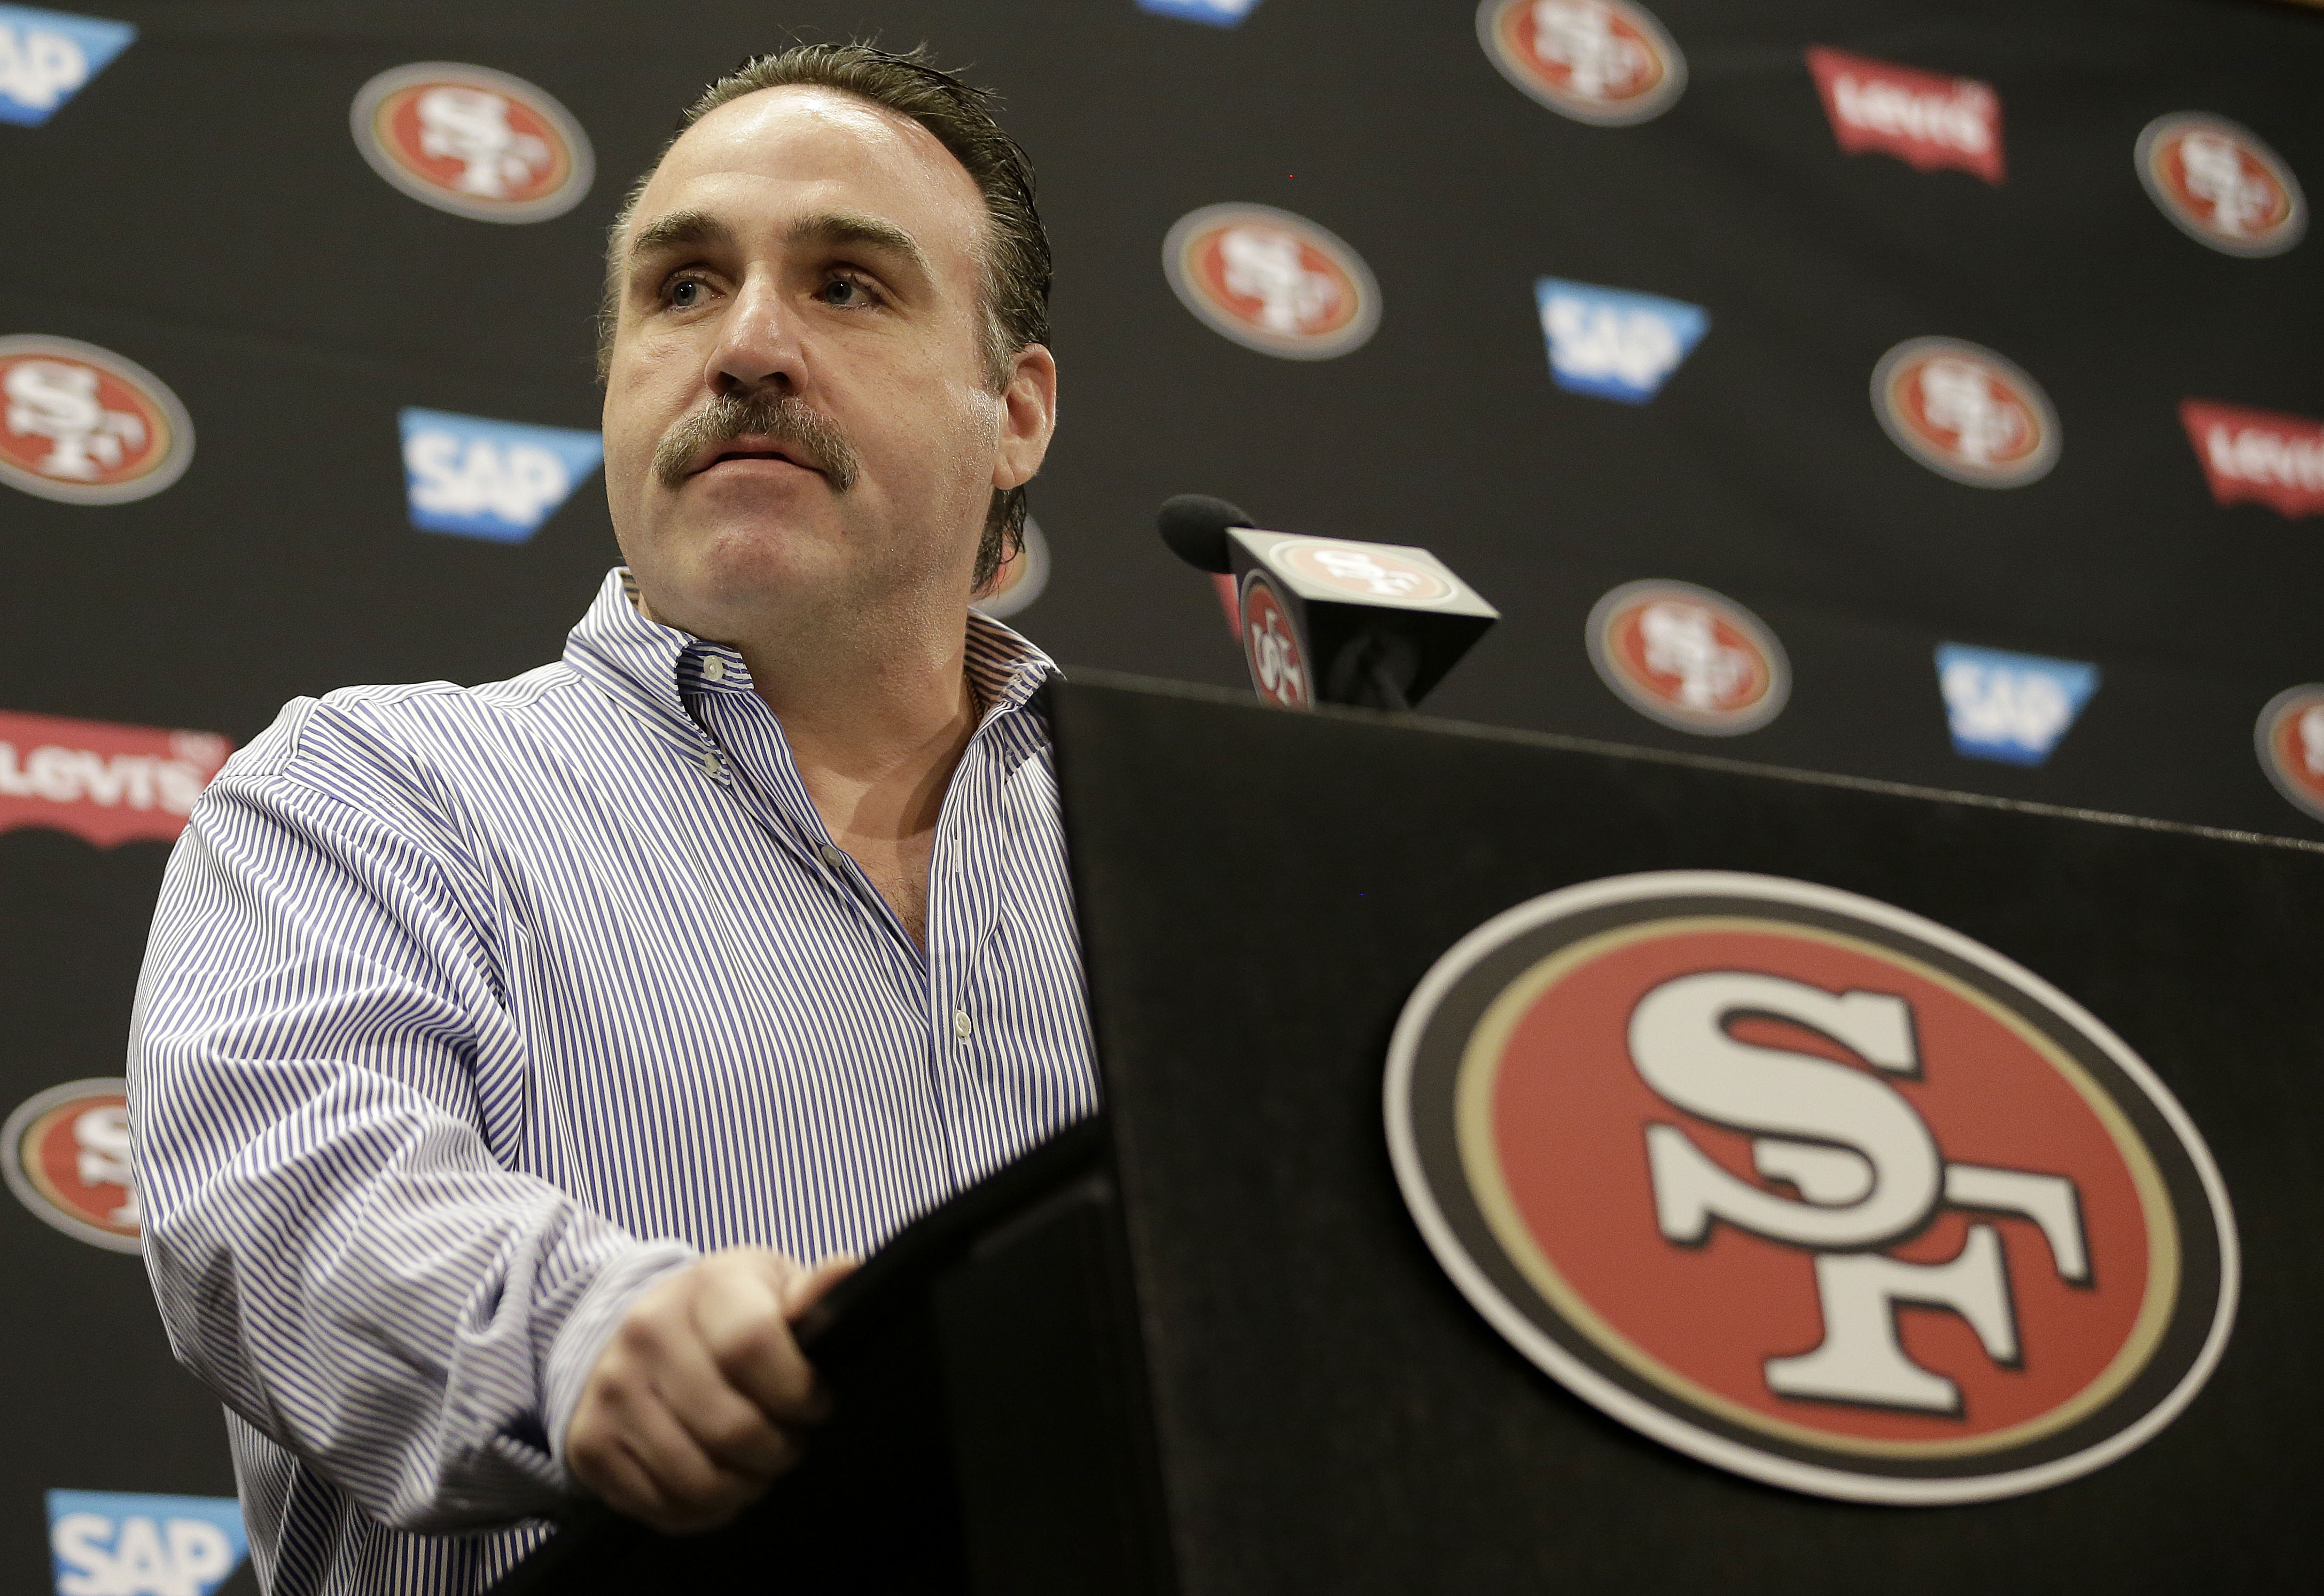 FILE - In this March 10, 2015, file photo, San Francisco 49ers head coach Jim Tomsula speaks during a news conference at the NFL football team's facility in Santa Clara, Calif. (AP Photo/Jeff Chiu, File)